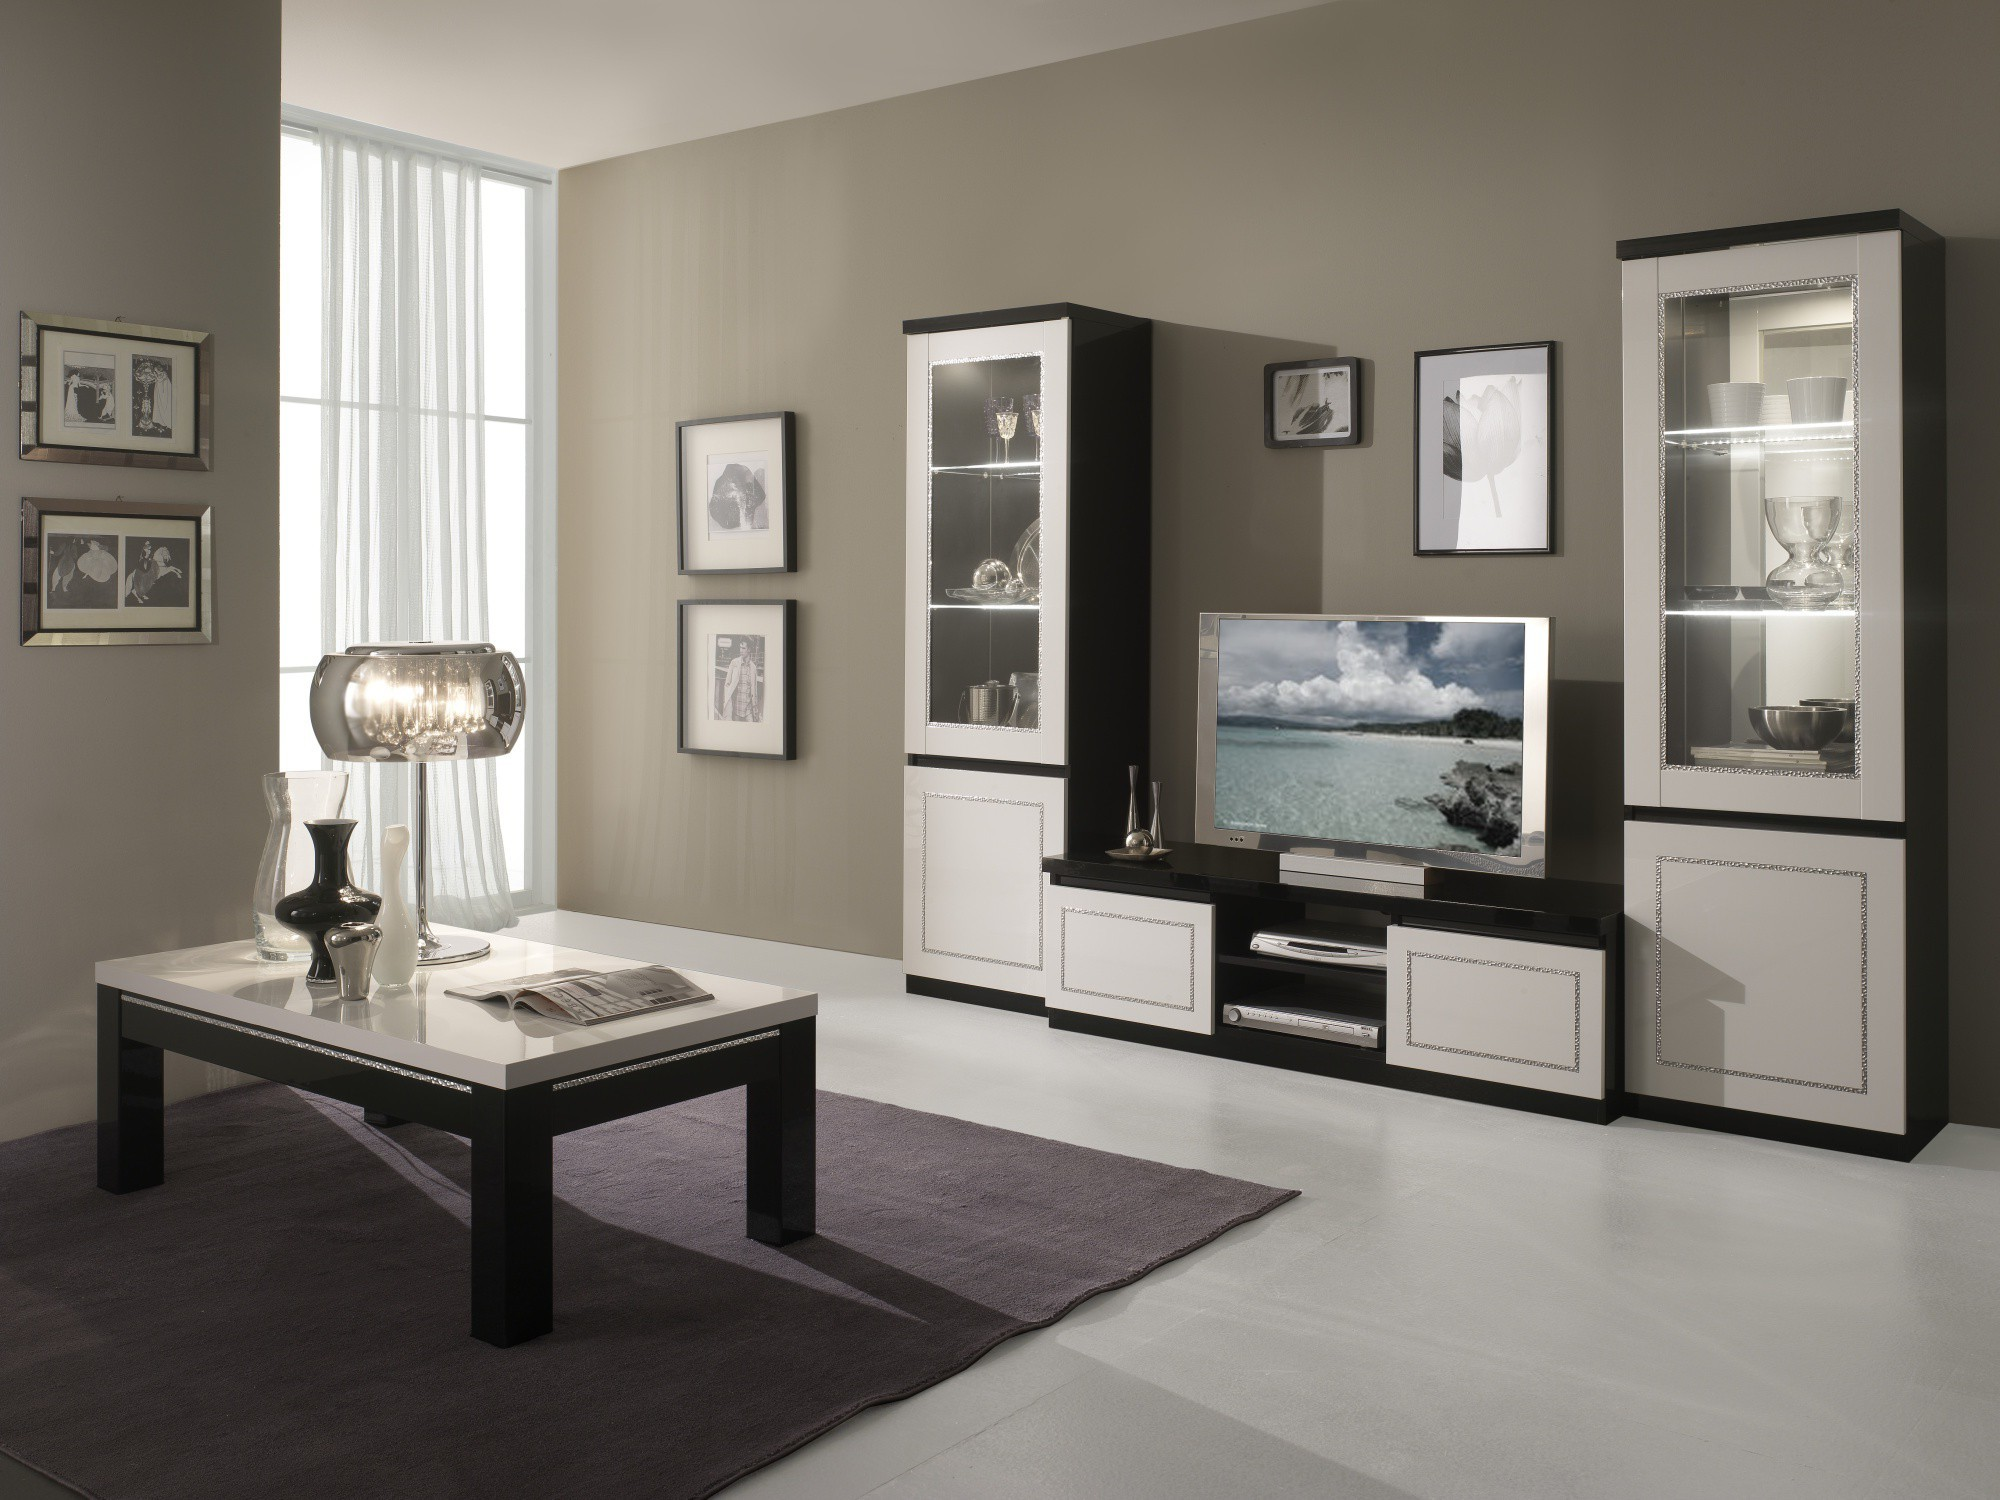 Stunning armoire salon moderne images for Armoire salon design